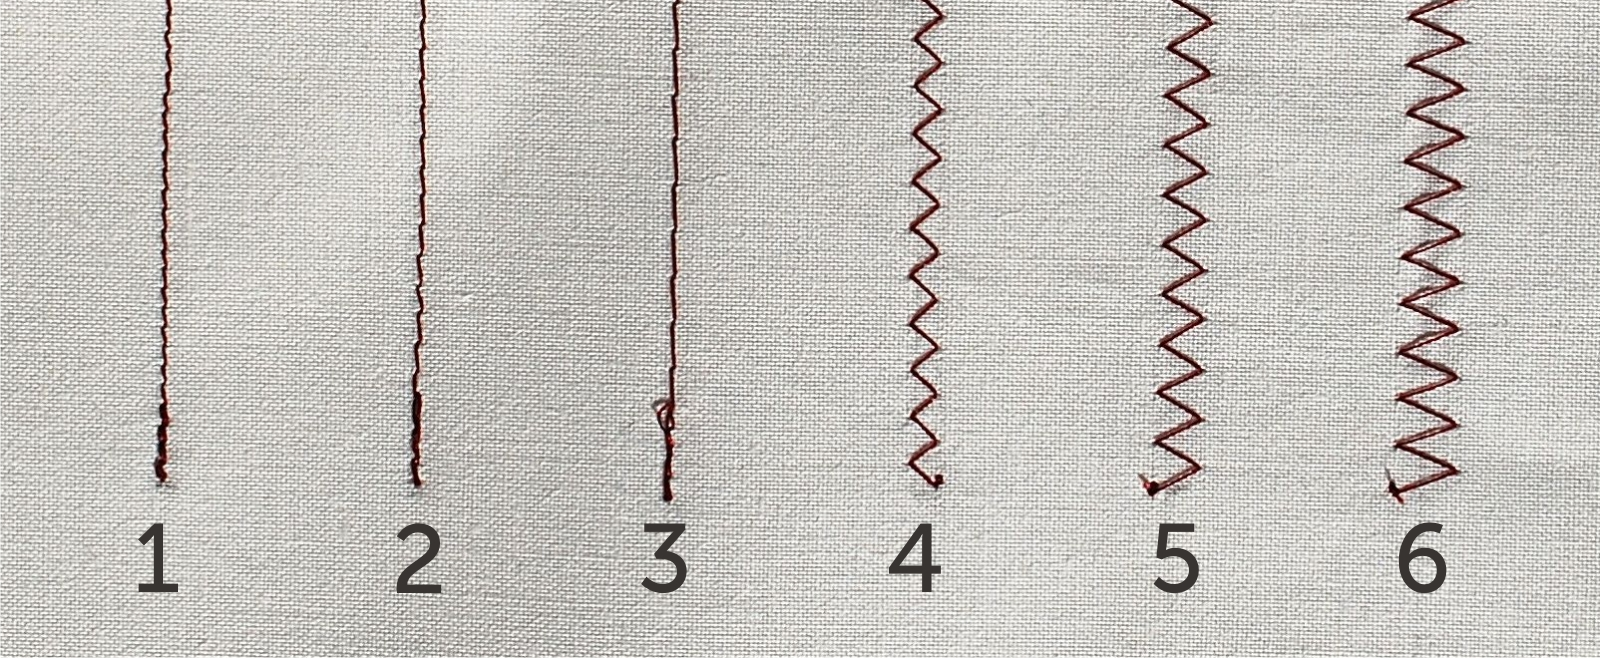 Pictured above are examples of different stitch lengths and widths. See below for a description of each.